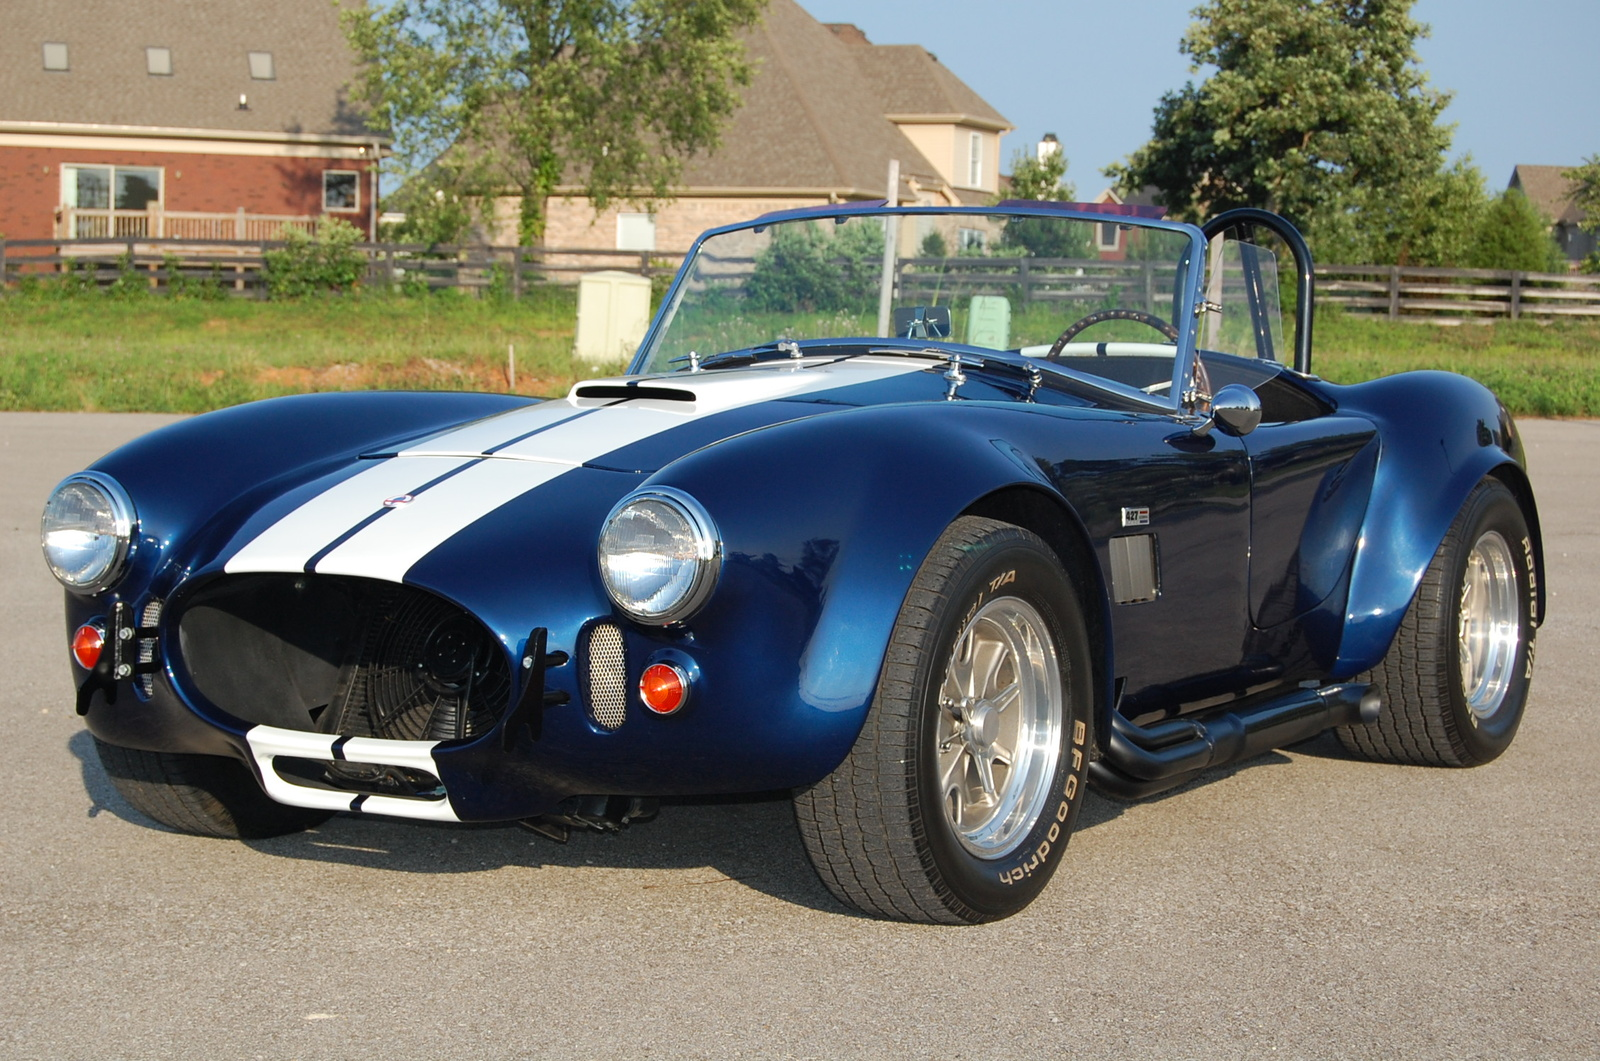 Shelby cobra 427 roadster group 4 1966 racing cars